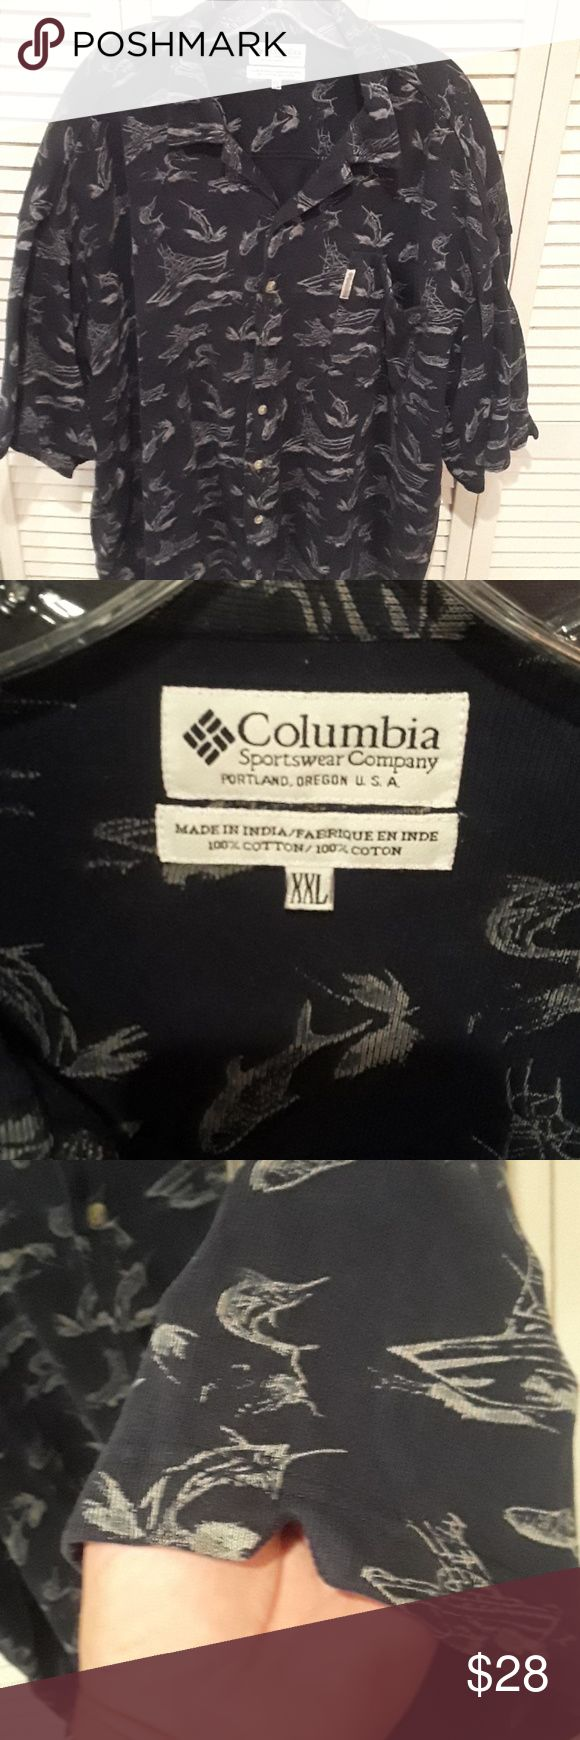 Columbia Sportswear Company nautical shirt Worn and washed once in great condition. Colors are navy blue gray beige. Depicts Marlin fishing boats and I think it's a shark COLUMBIA SPORTSWEAR COMPANY Shirts Casual Button Down Shirts